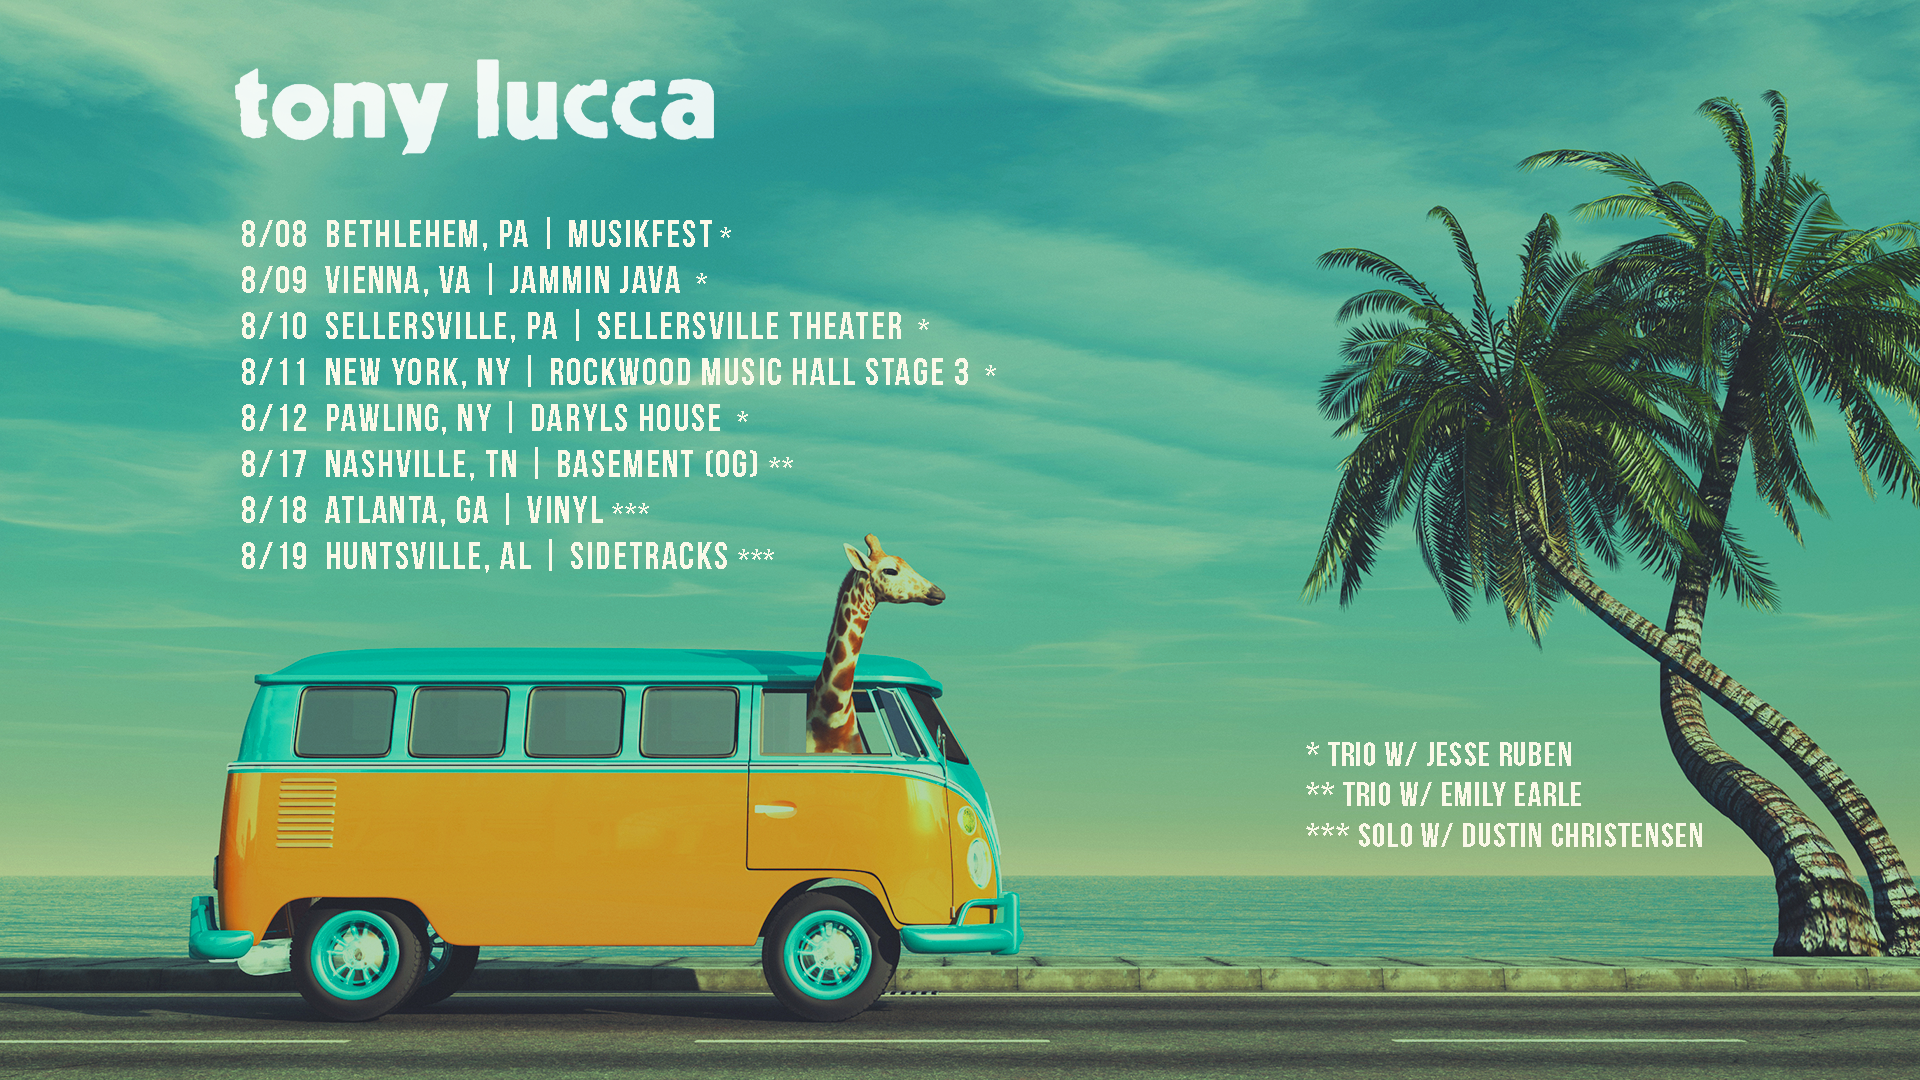 Tony Lucca August 2018 Tour.png